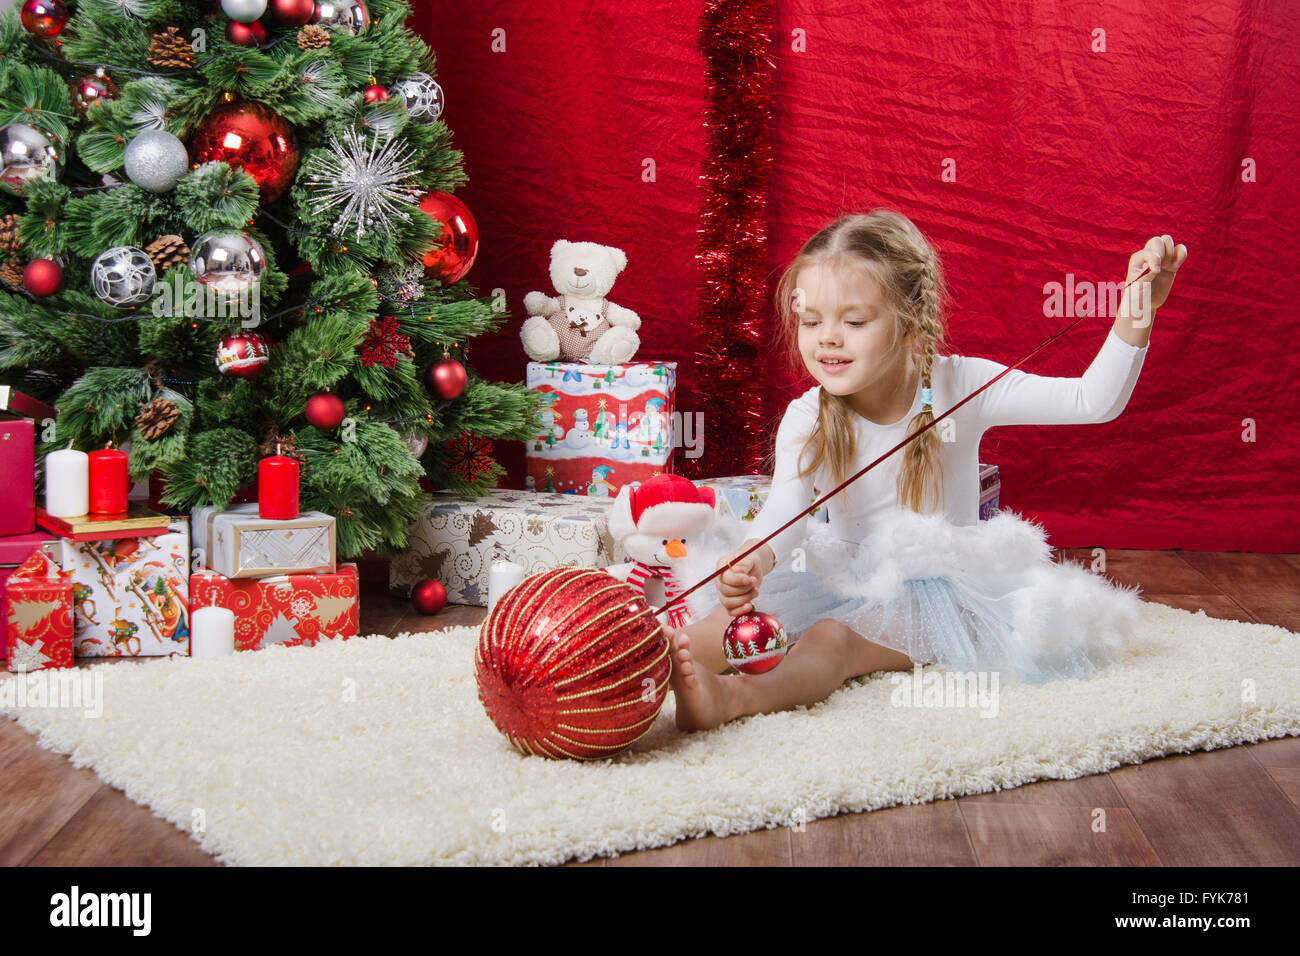 Five-year girl with balloons near Christmas tree - Stock Image